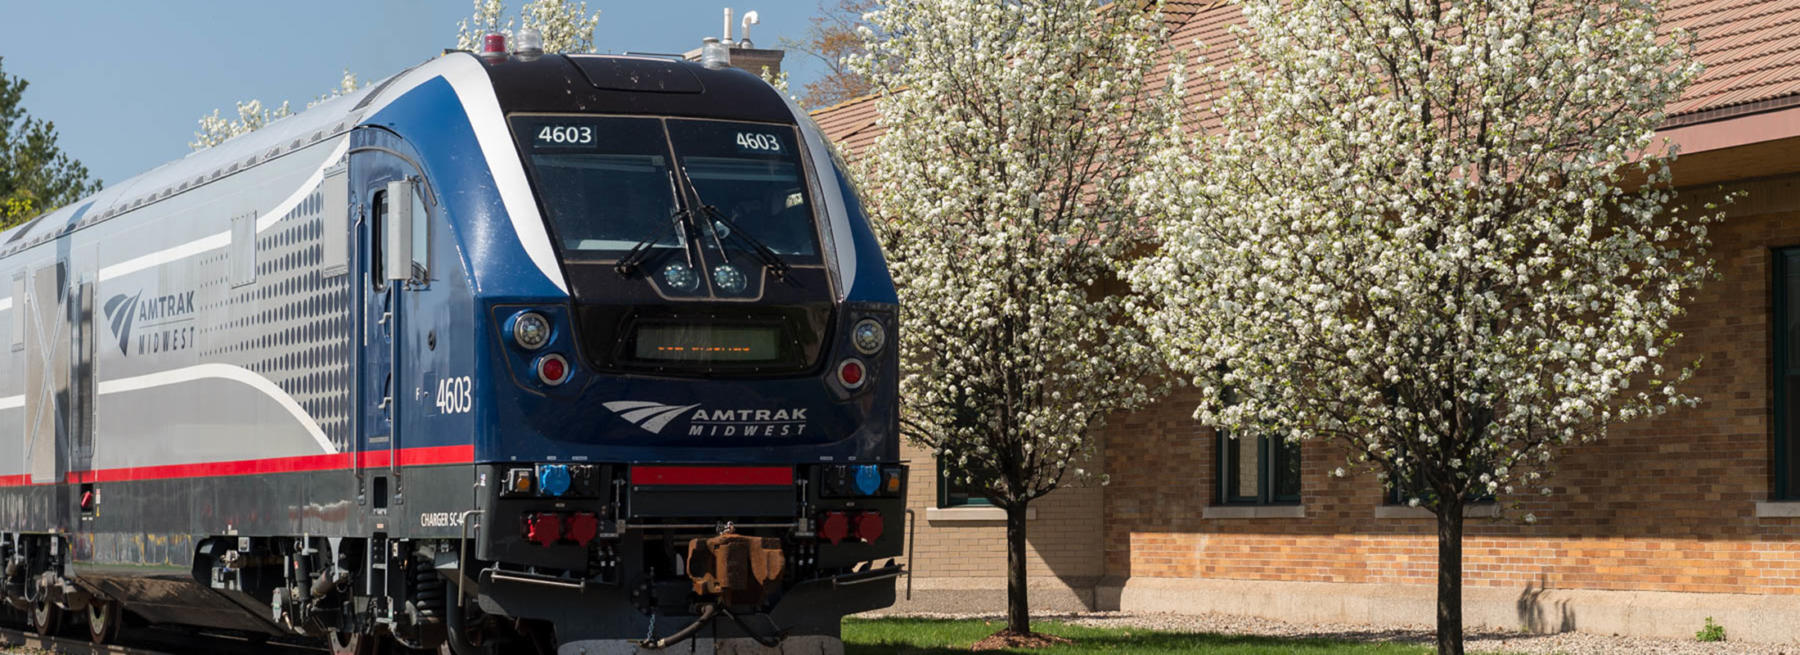 All aboard Amtrak to Chicago